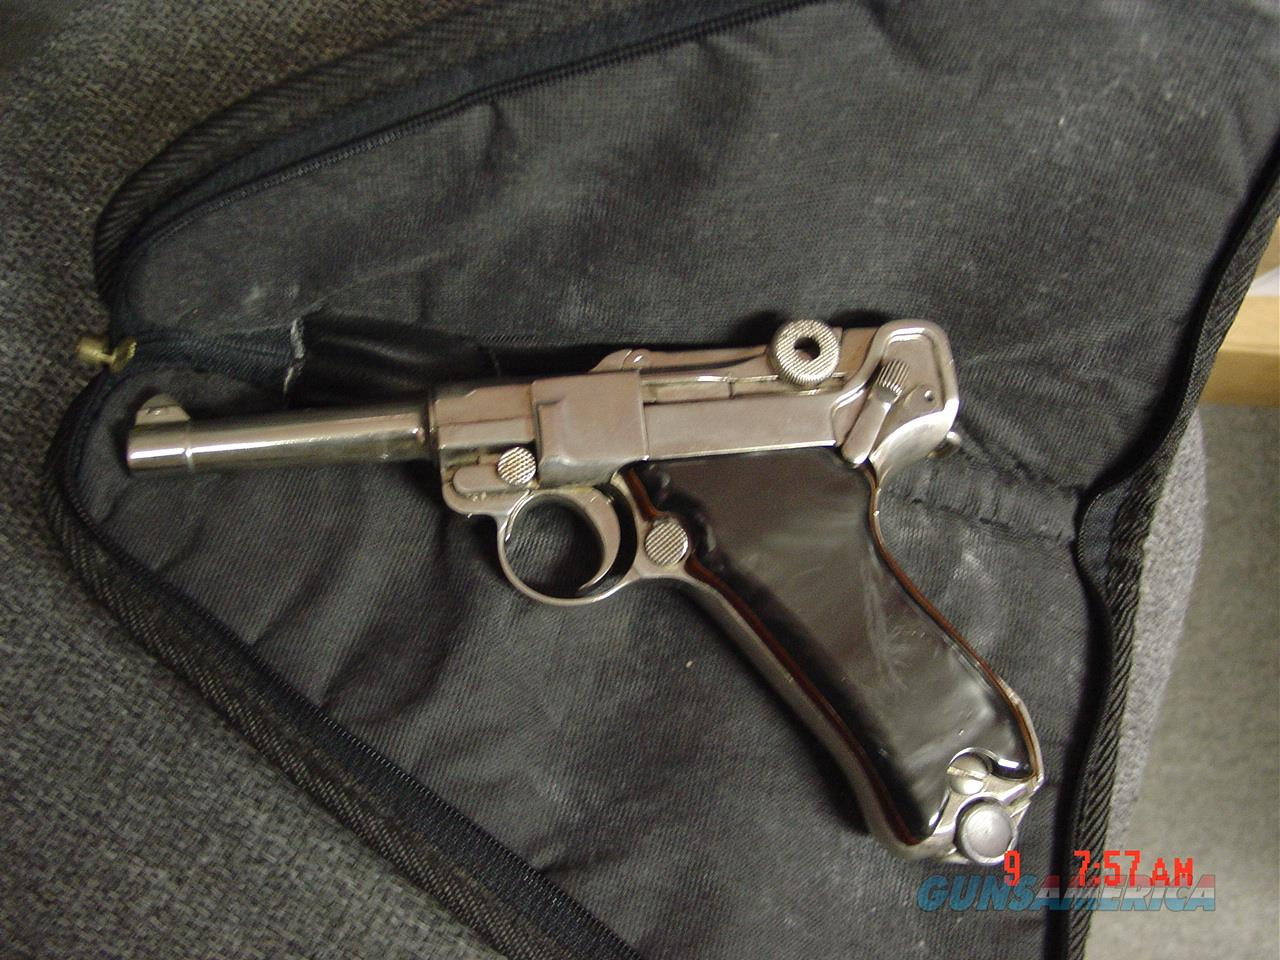 Luger- German 7 65 caliber older refinished nickel,custom black Pearlite  with wood grips,made around 1923 so I was told,1 magazine,